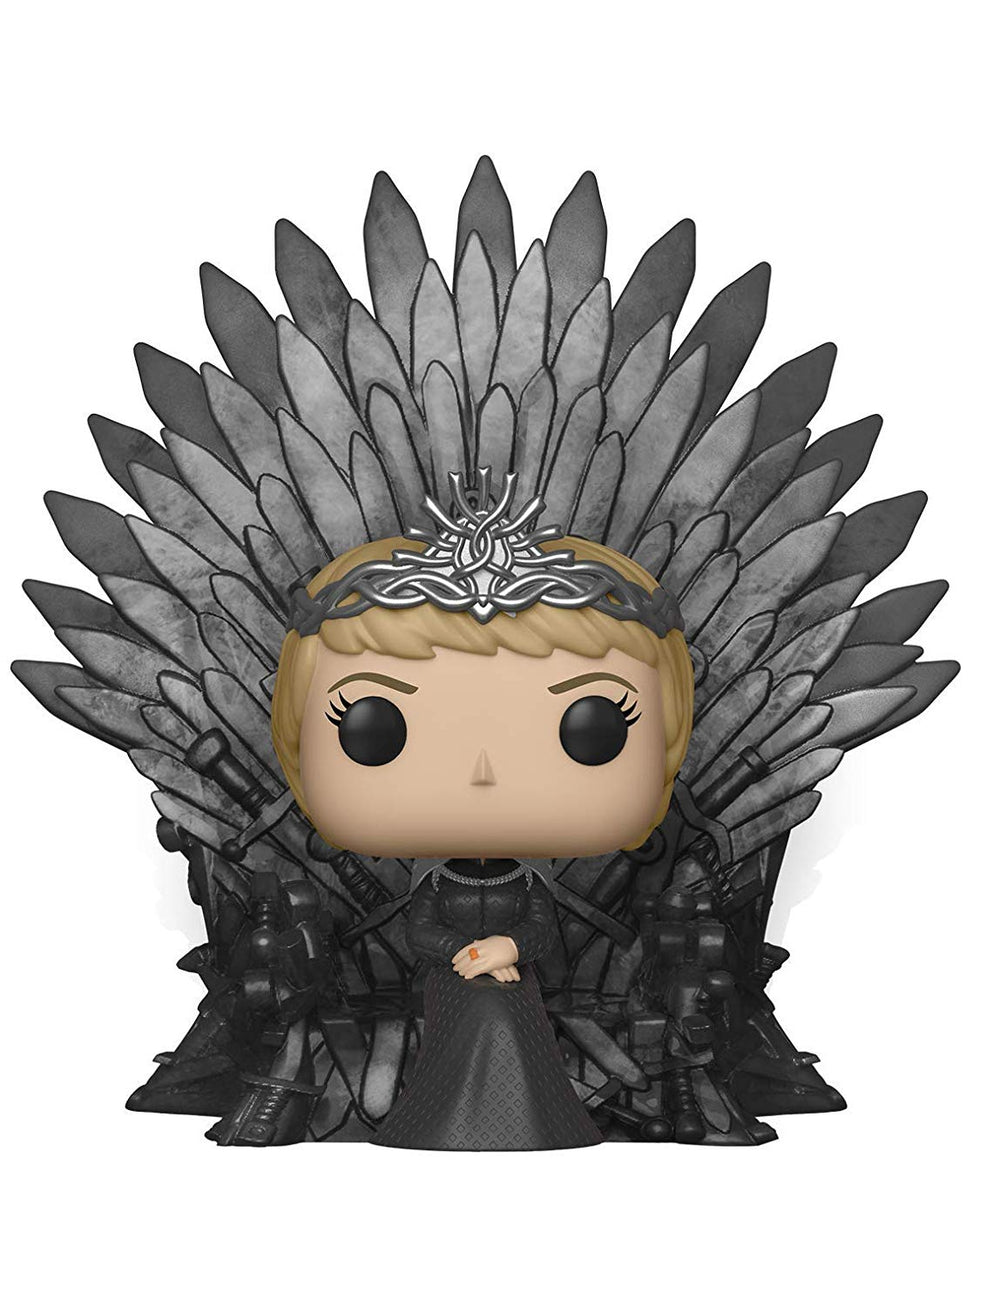 FUNKO POP! Game of Thrones - Cersei Lannister Sitting on Iron Throne